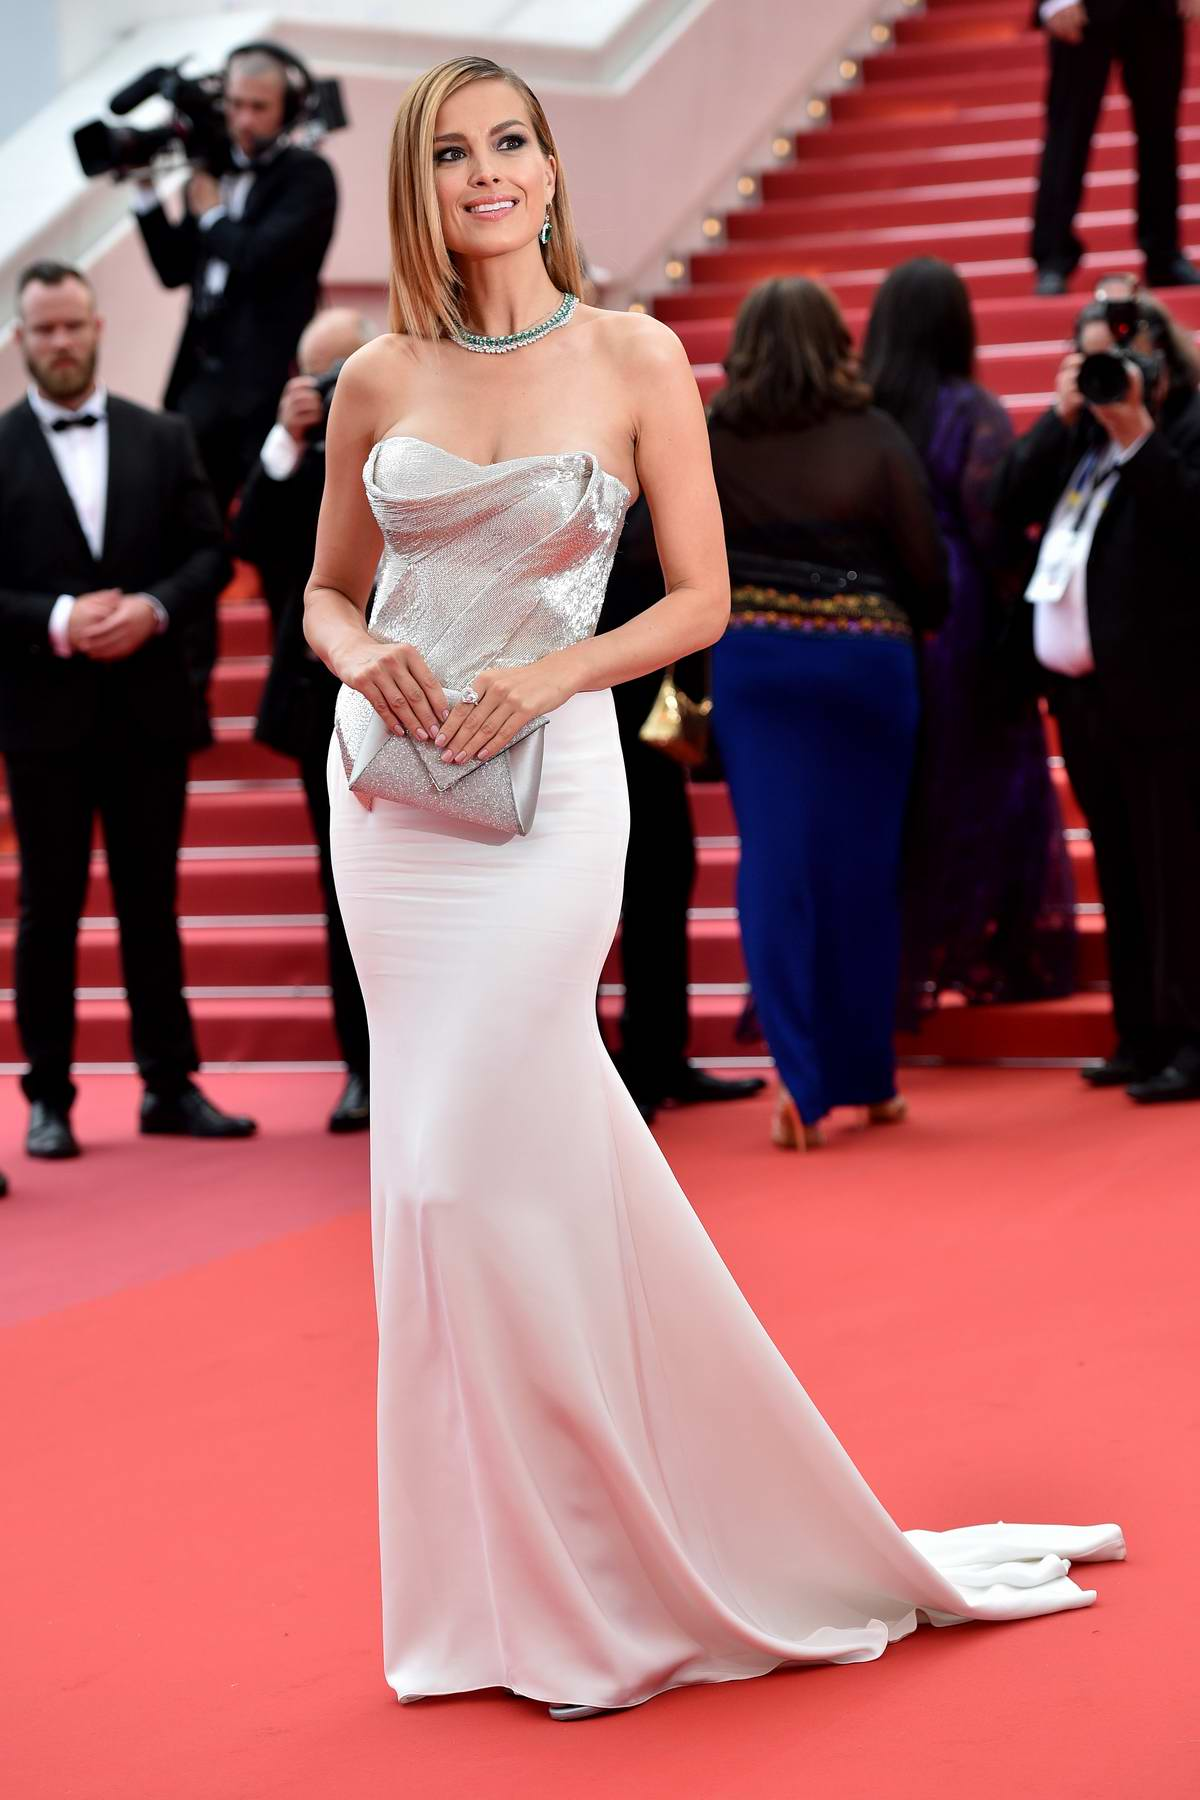 Petra Nemcova at the premiere of 'Sorry Angel' during 71st Cannes Film Festival in Cannes, France